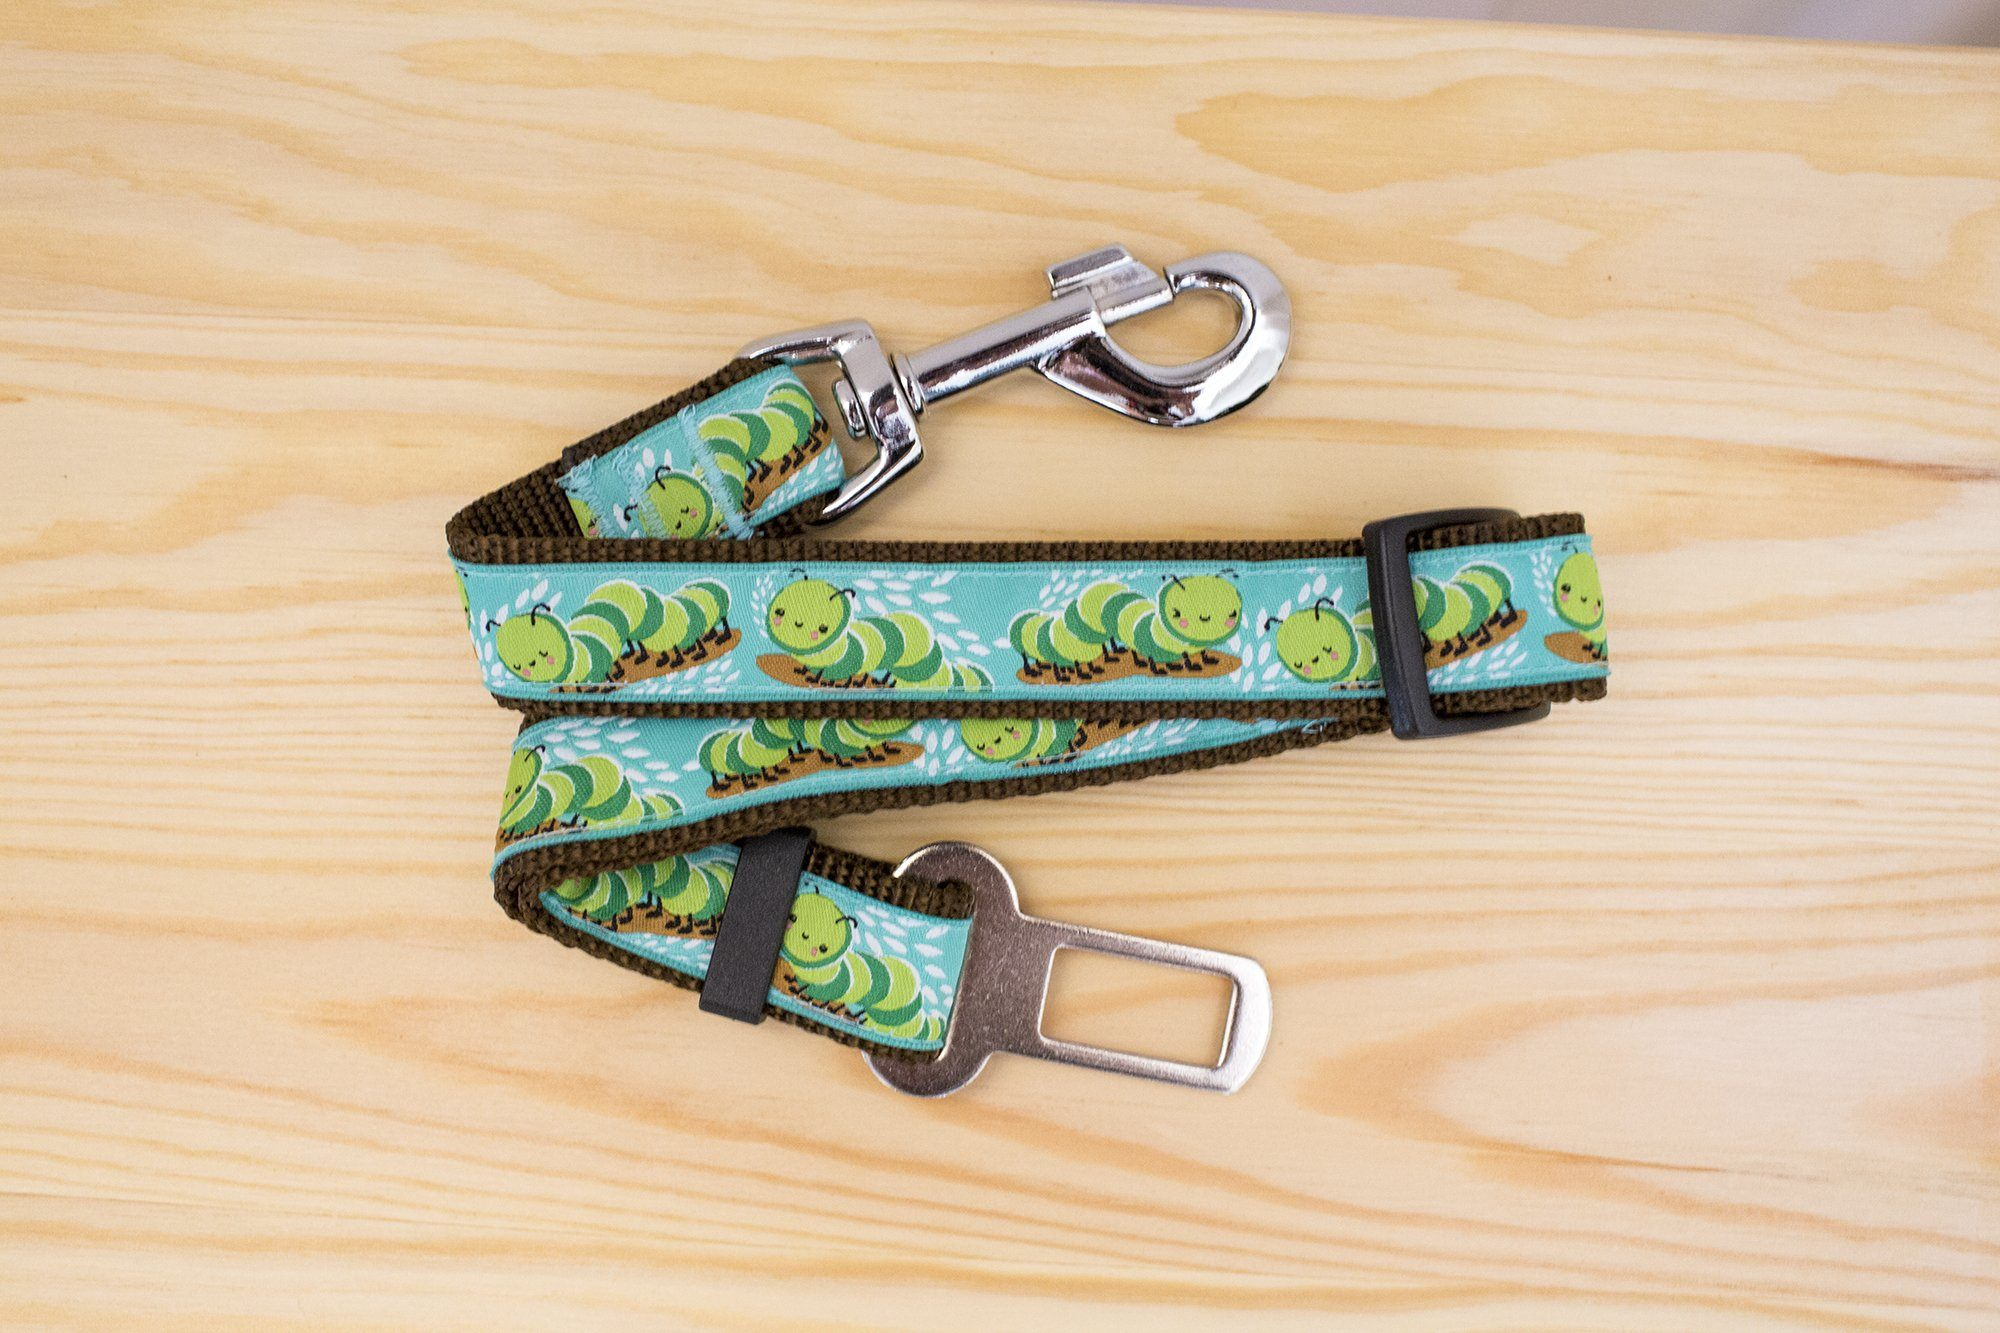 Dog Seatbelt - Grubs-Dizzy Dog Collars-Dizzy Dog Collars